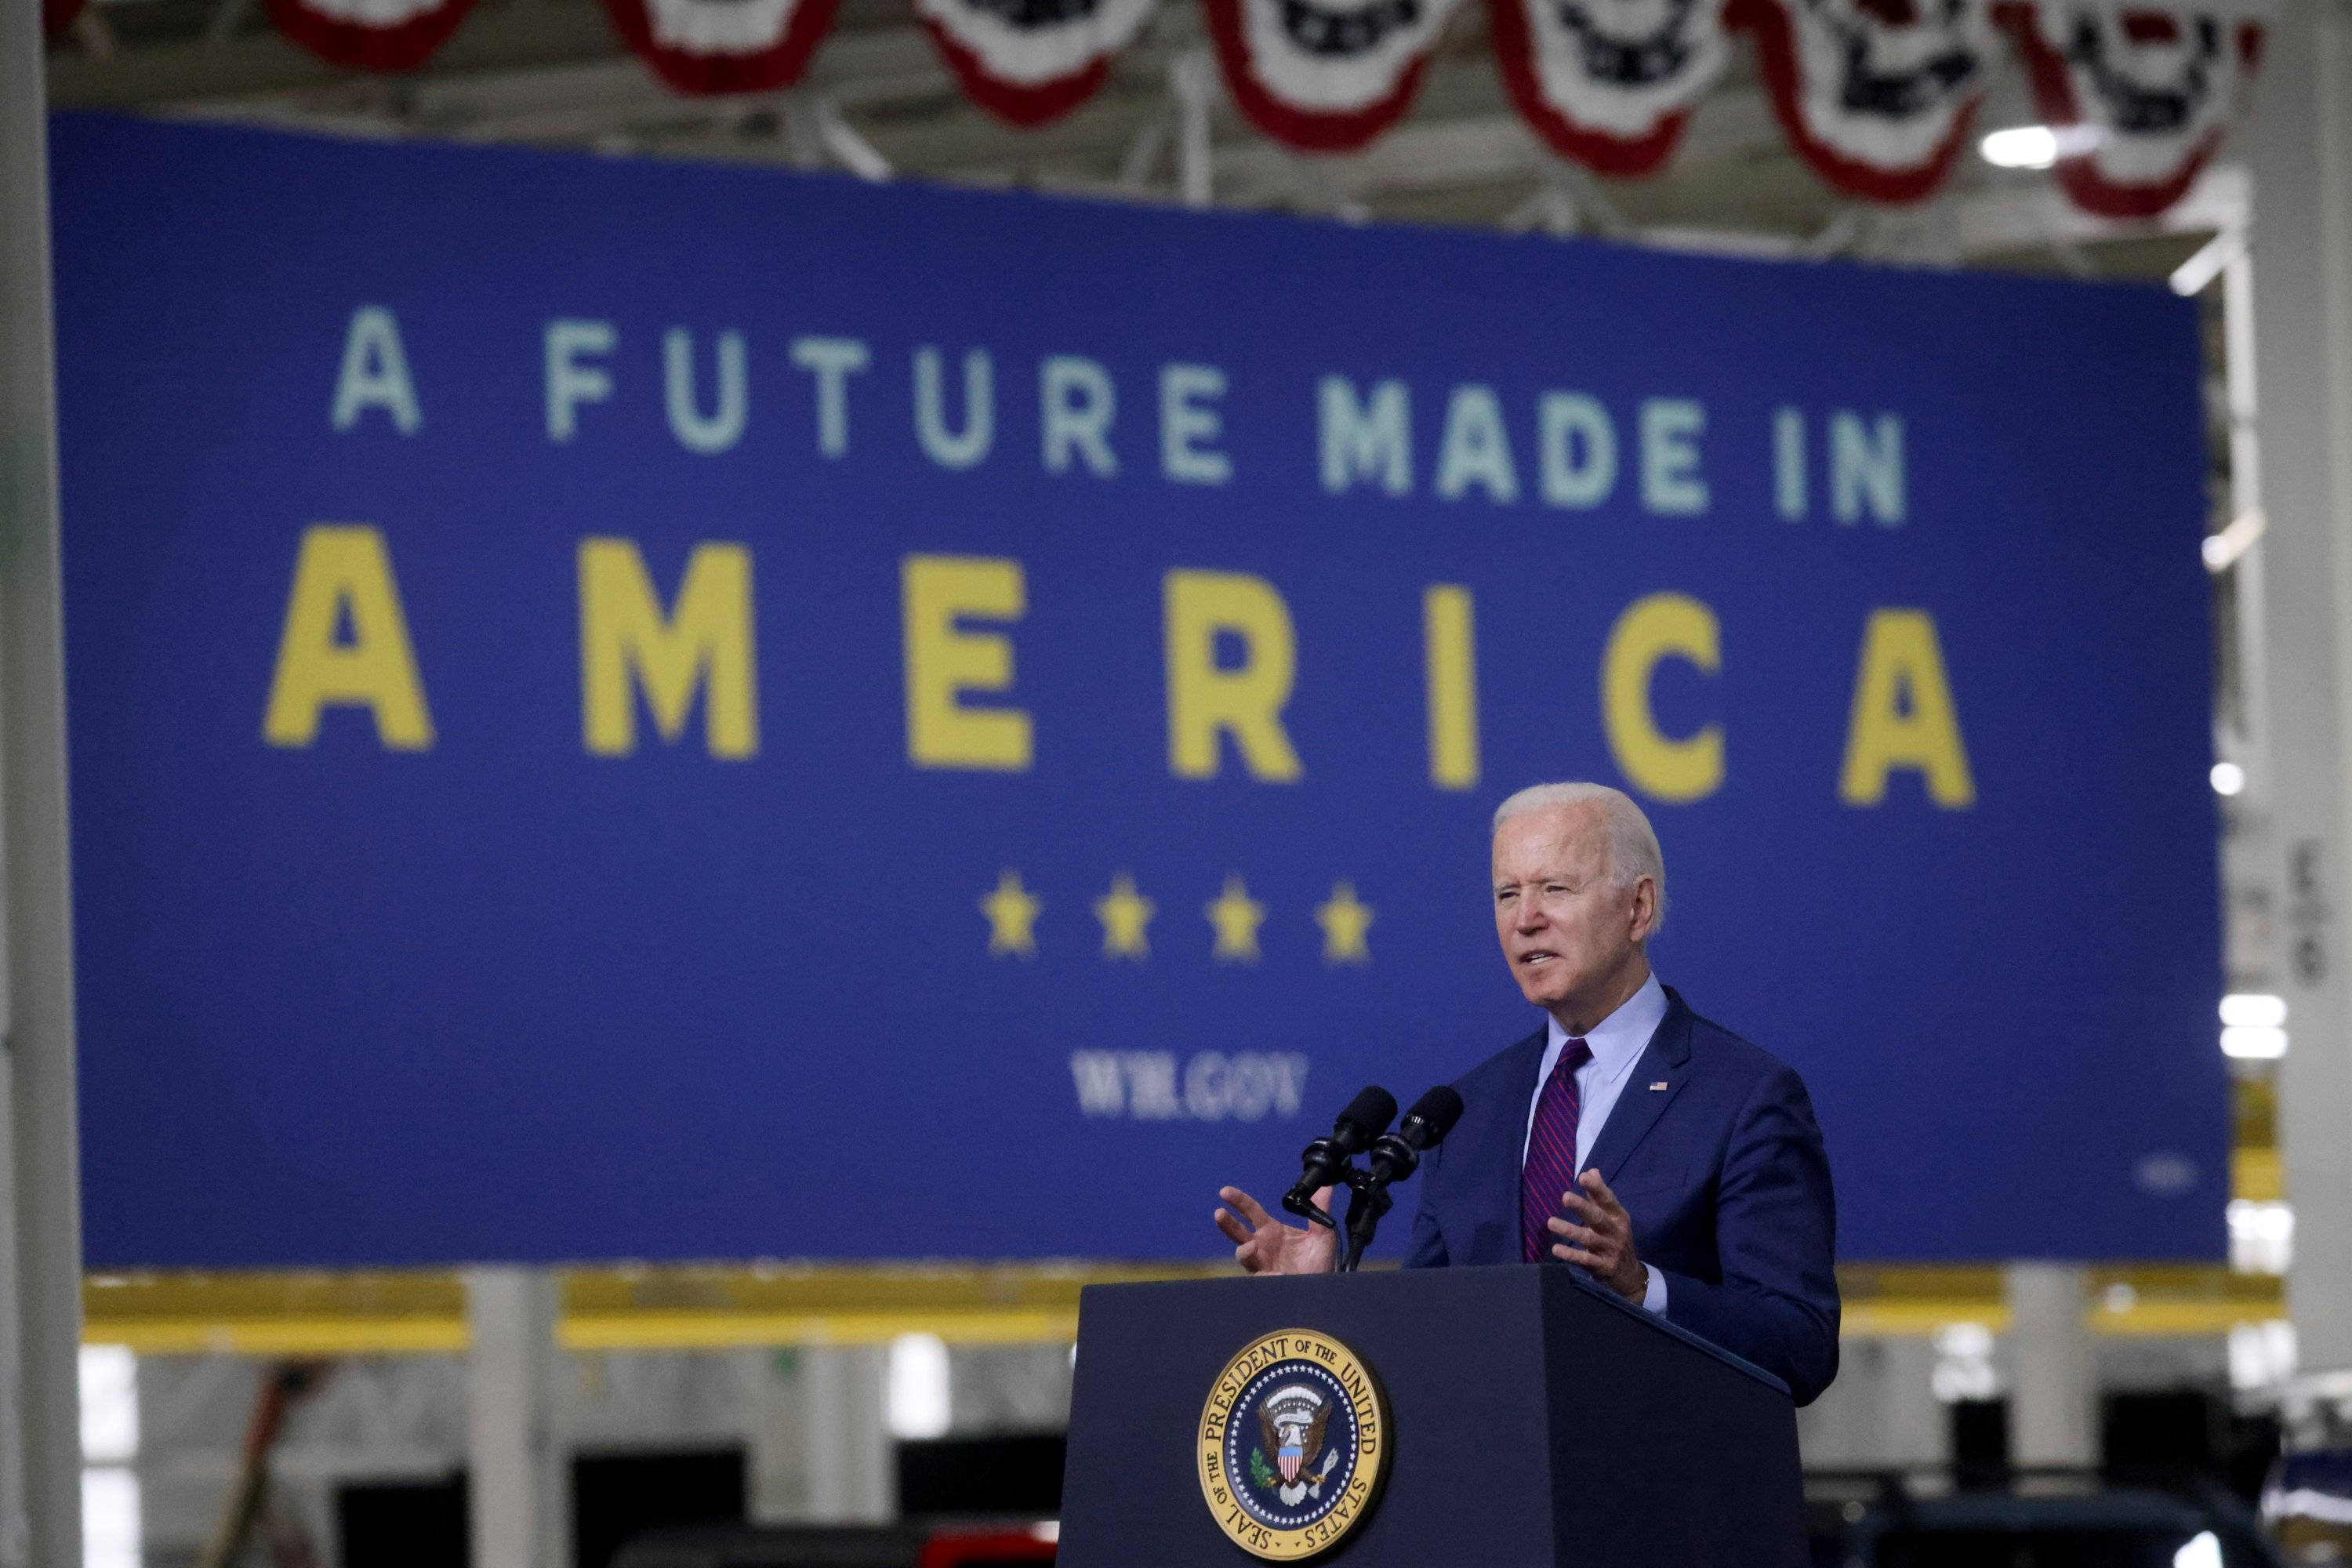 U.S. President Joe Biden delivers remarks after touring the Ford Rouge Electric Vehicle Center in Dearborn, Michigan, U.S., May 18, 2021. (Reuters Photo)